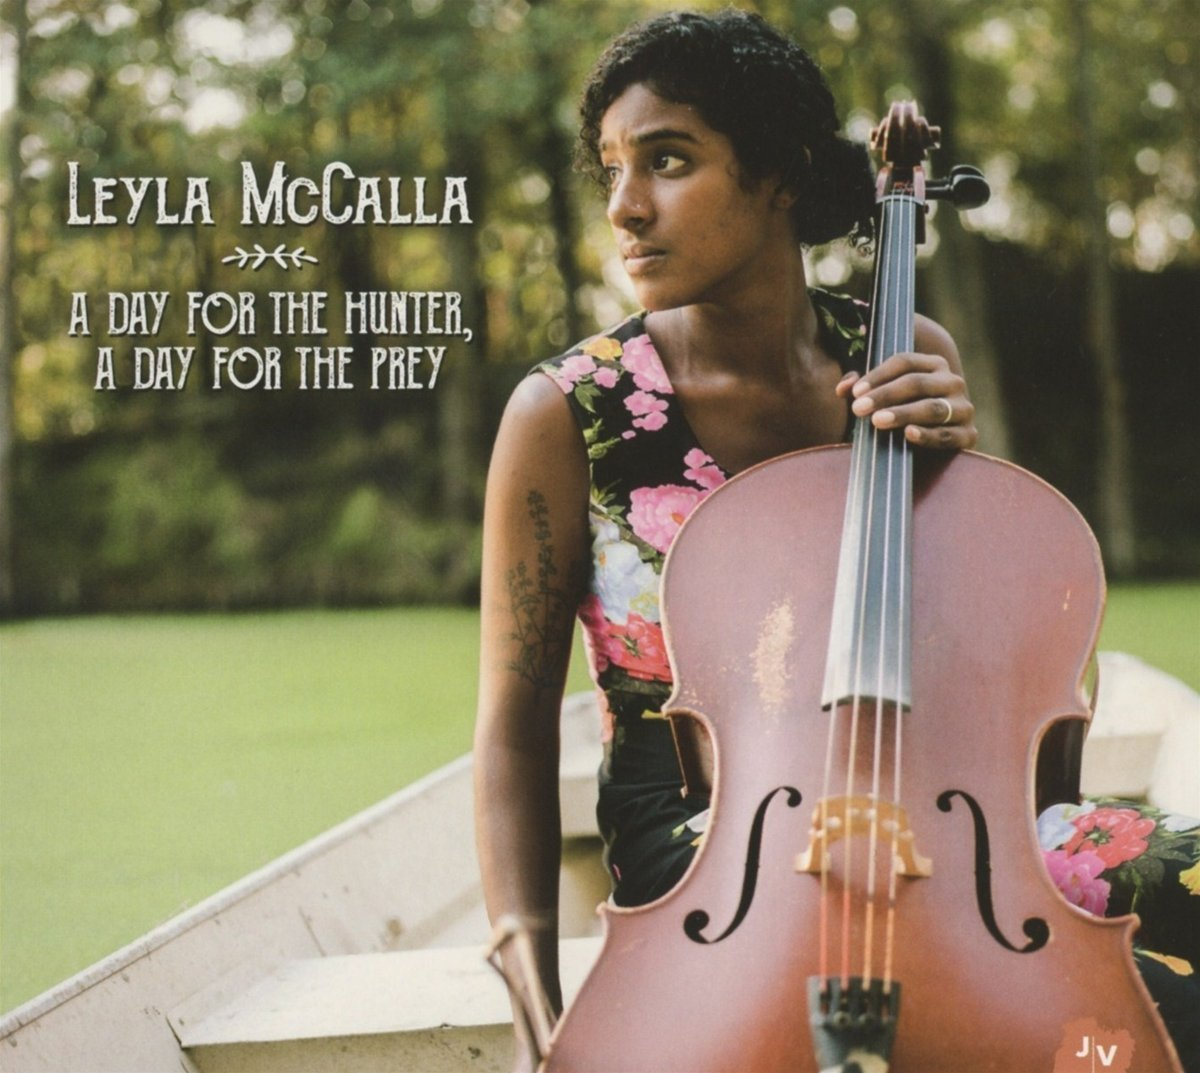 Leyla McCalla: A Day for the Hunter, A Day for the Prey